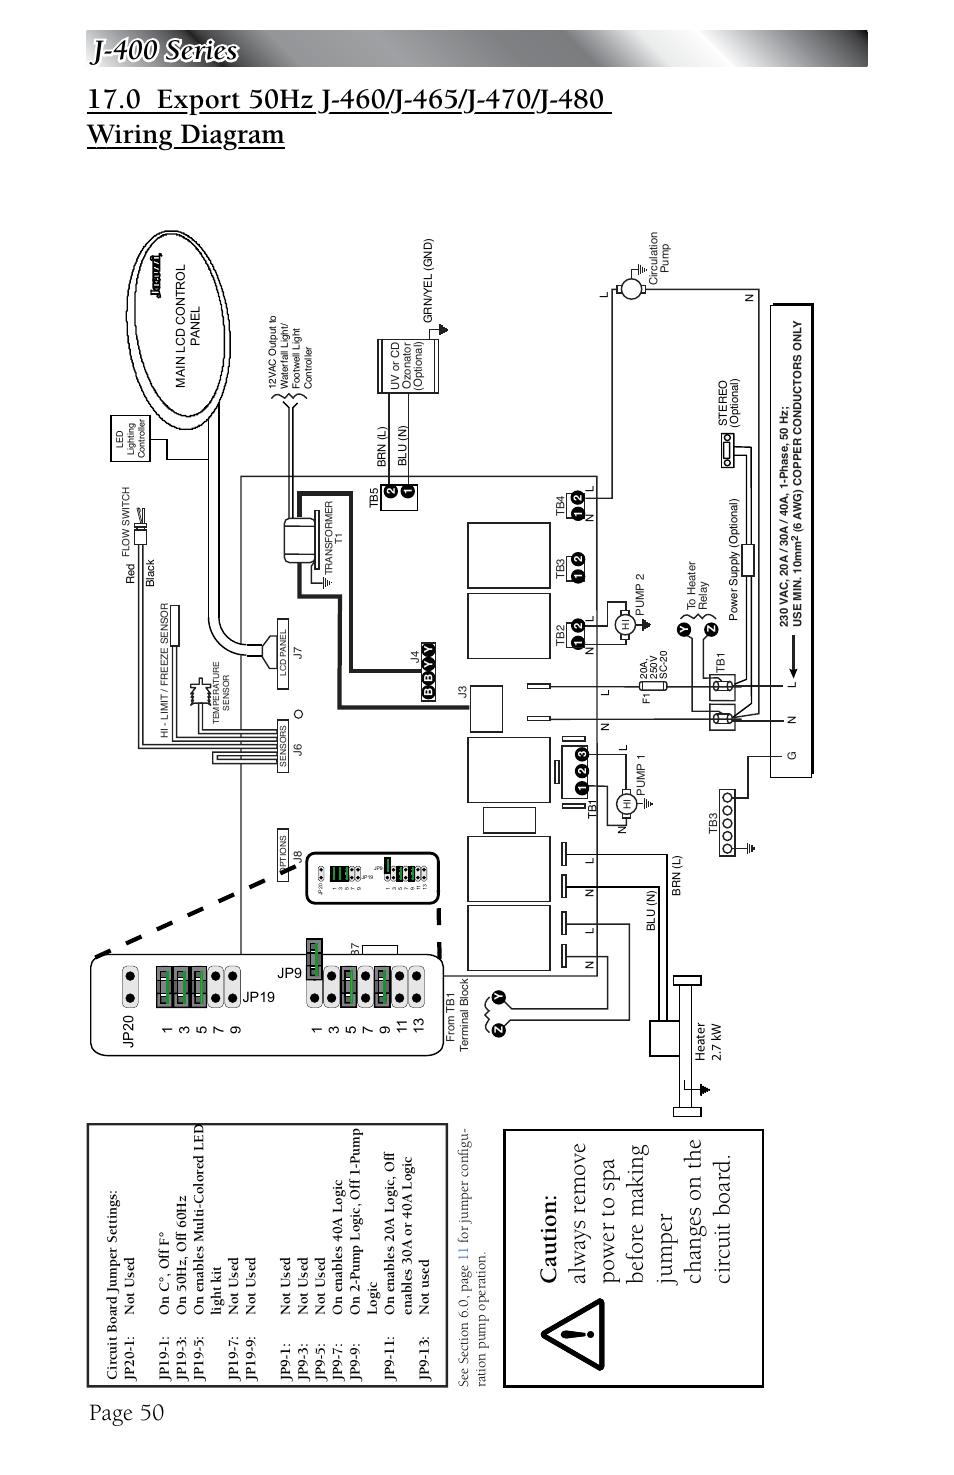 Export 50hz J 460 J 465 J 470 J 480 Wiring Diagram Page